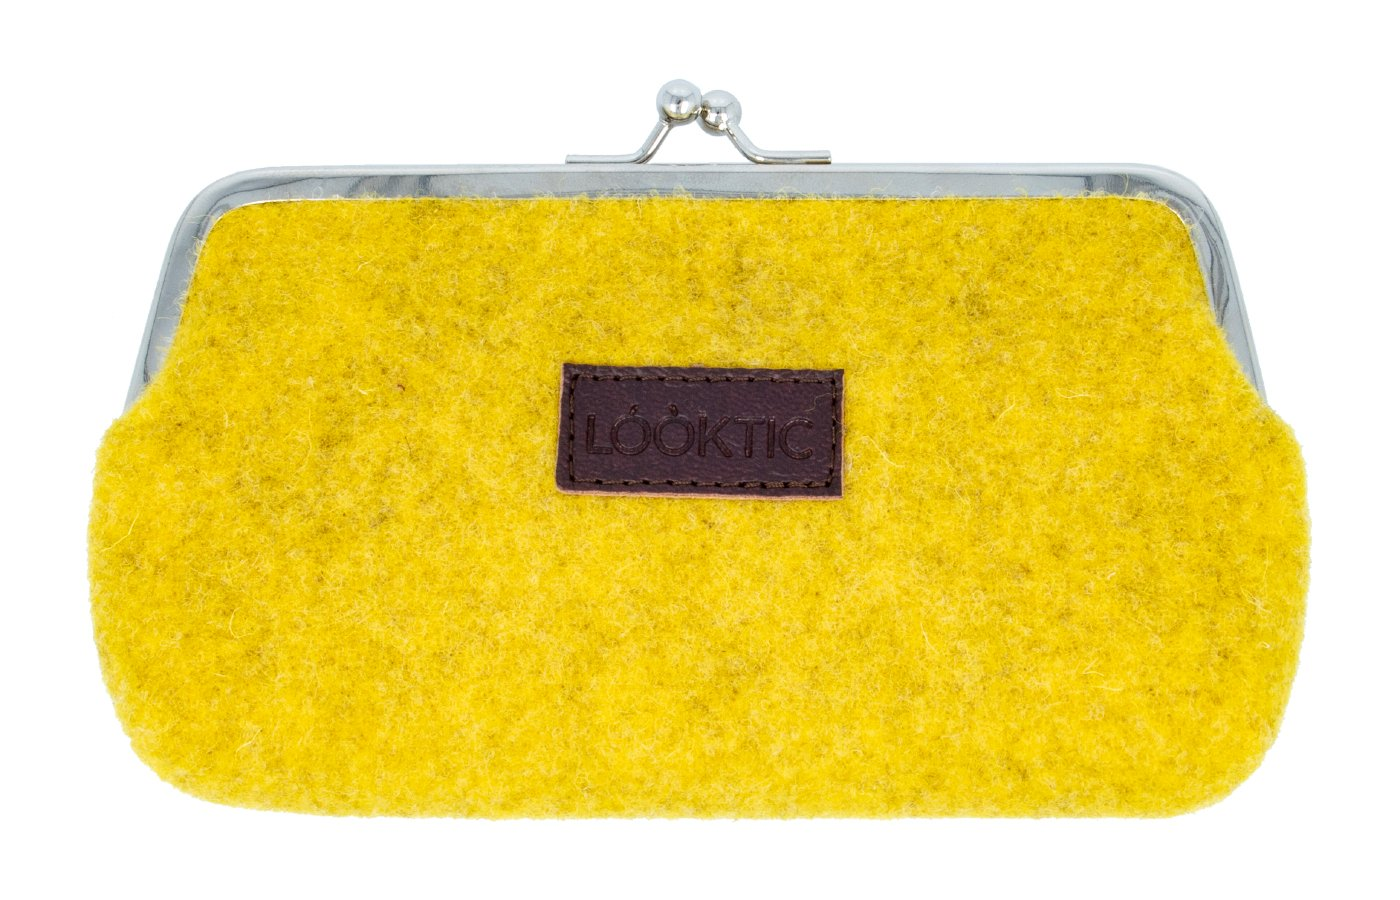 Estuche Looktic Dakota amarillo